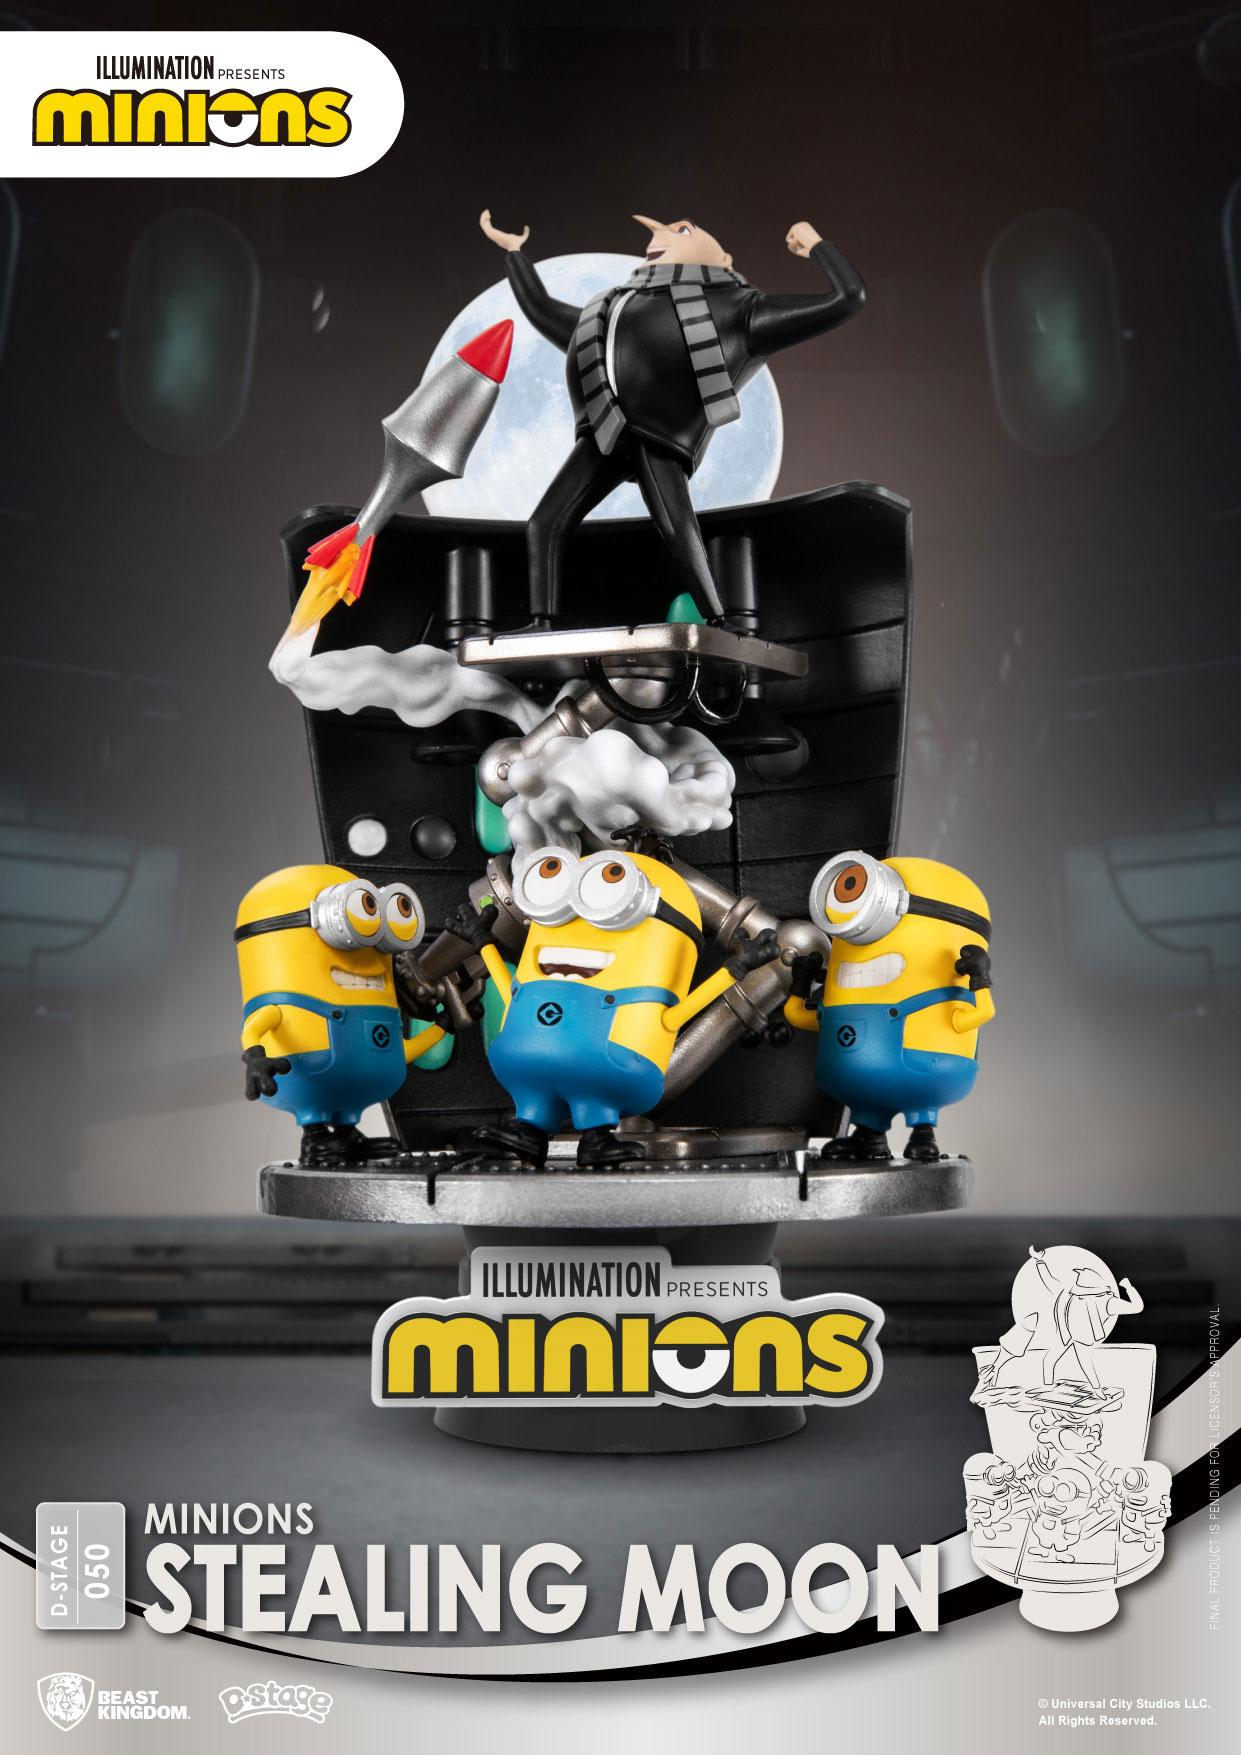 Minions - D-Stage : Figurine Stealing Moon Minions